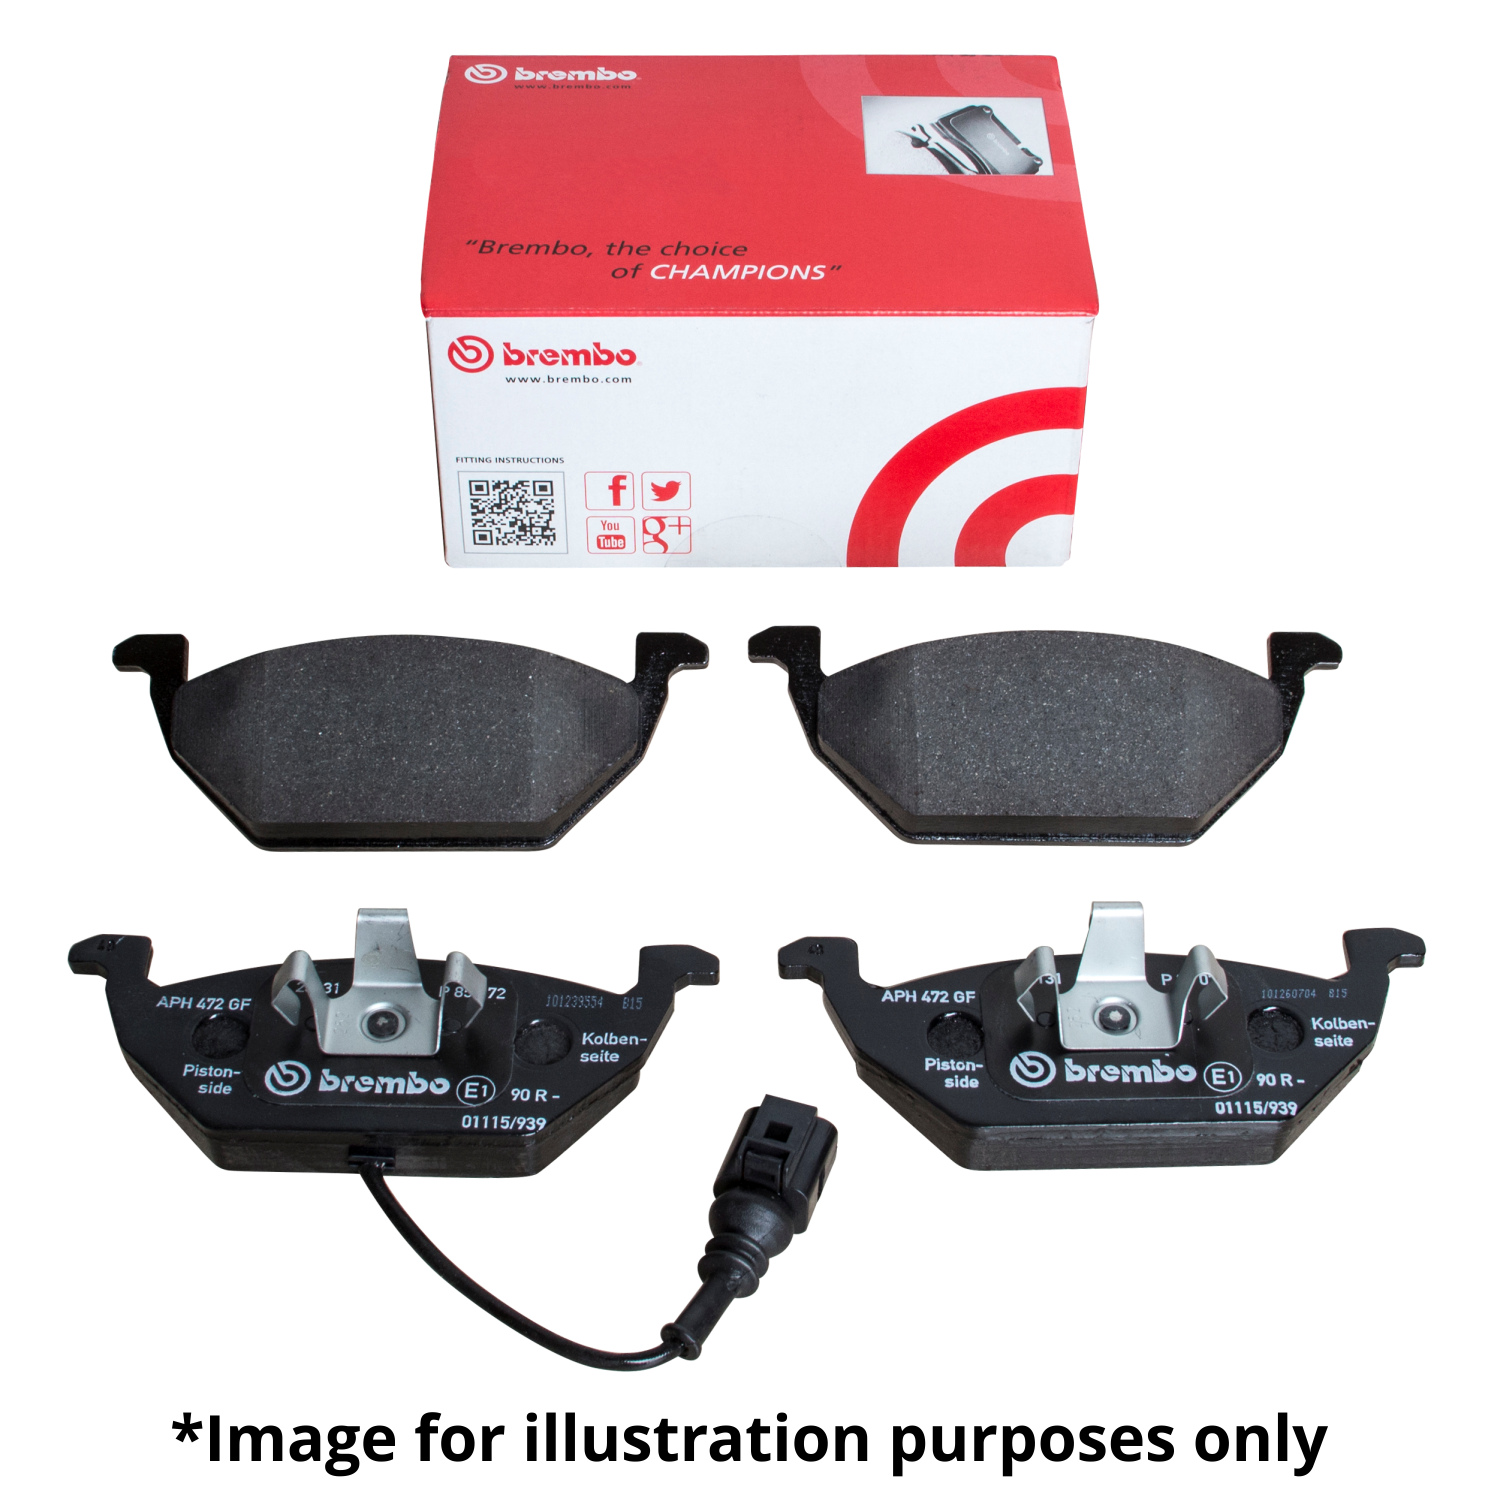 Brembo Brake Pads >> Details About Genuine Brembo Brakes Rear Brake Pad Set Brake Pads P06026 Brake Kit